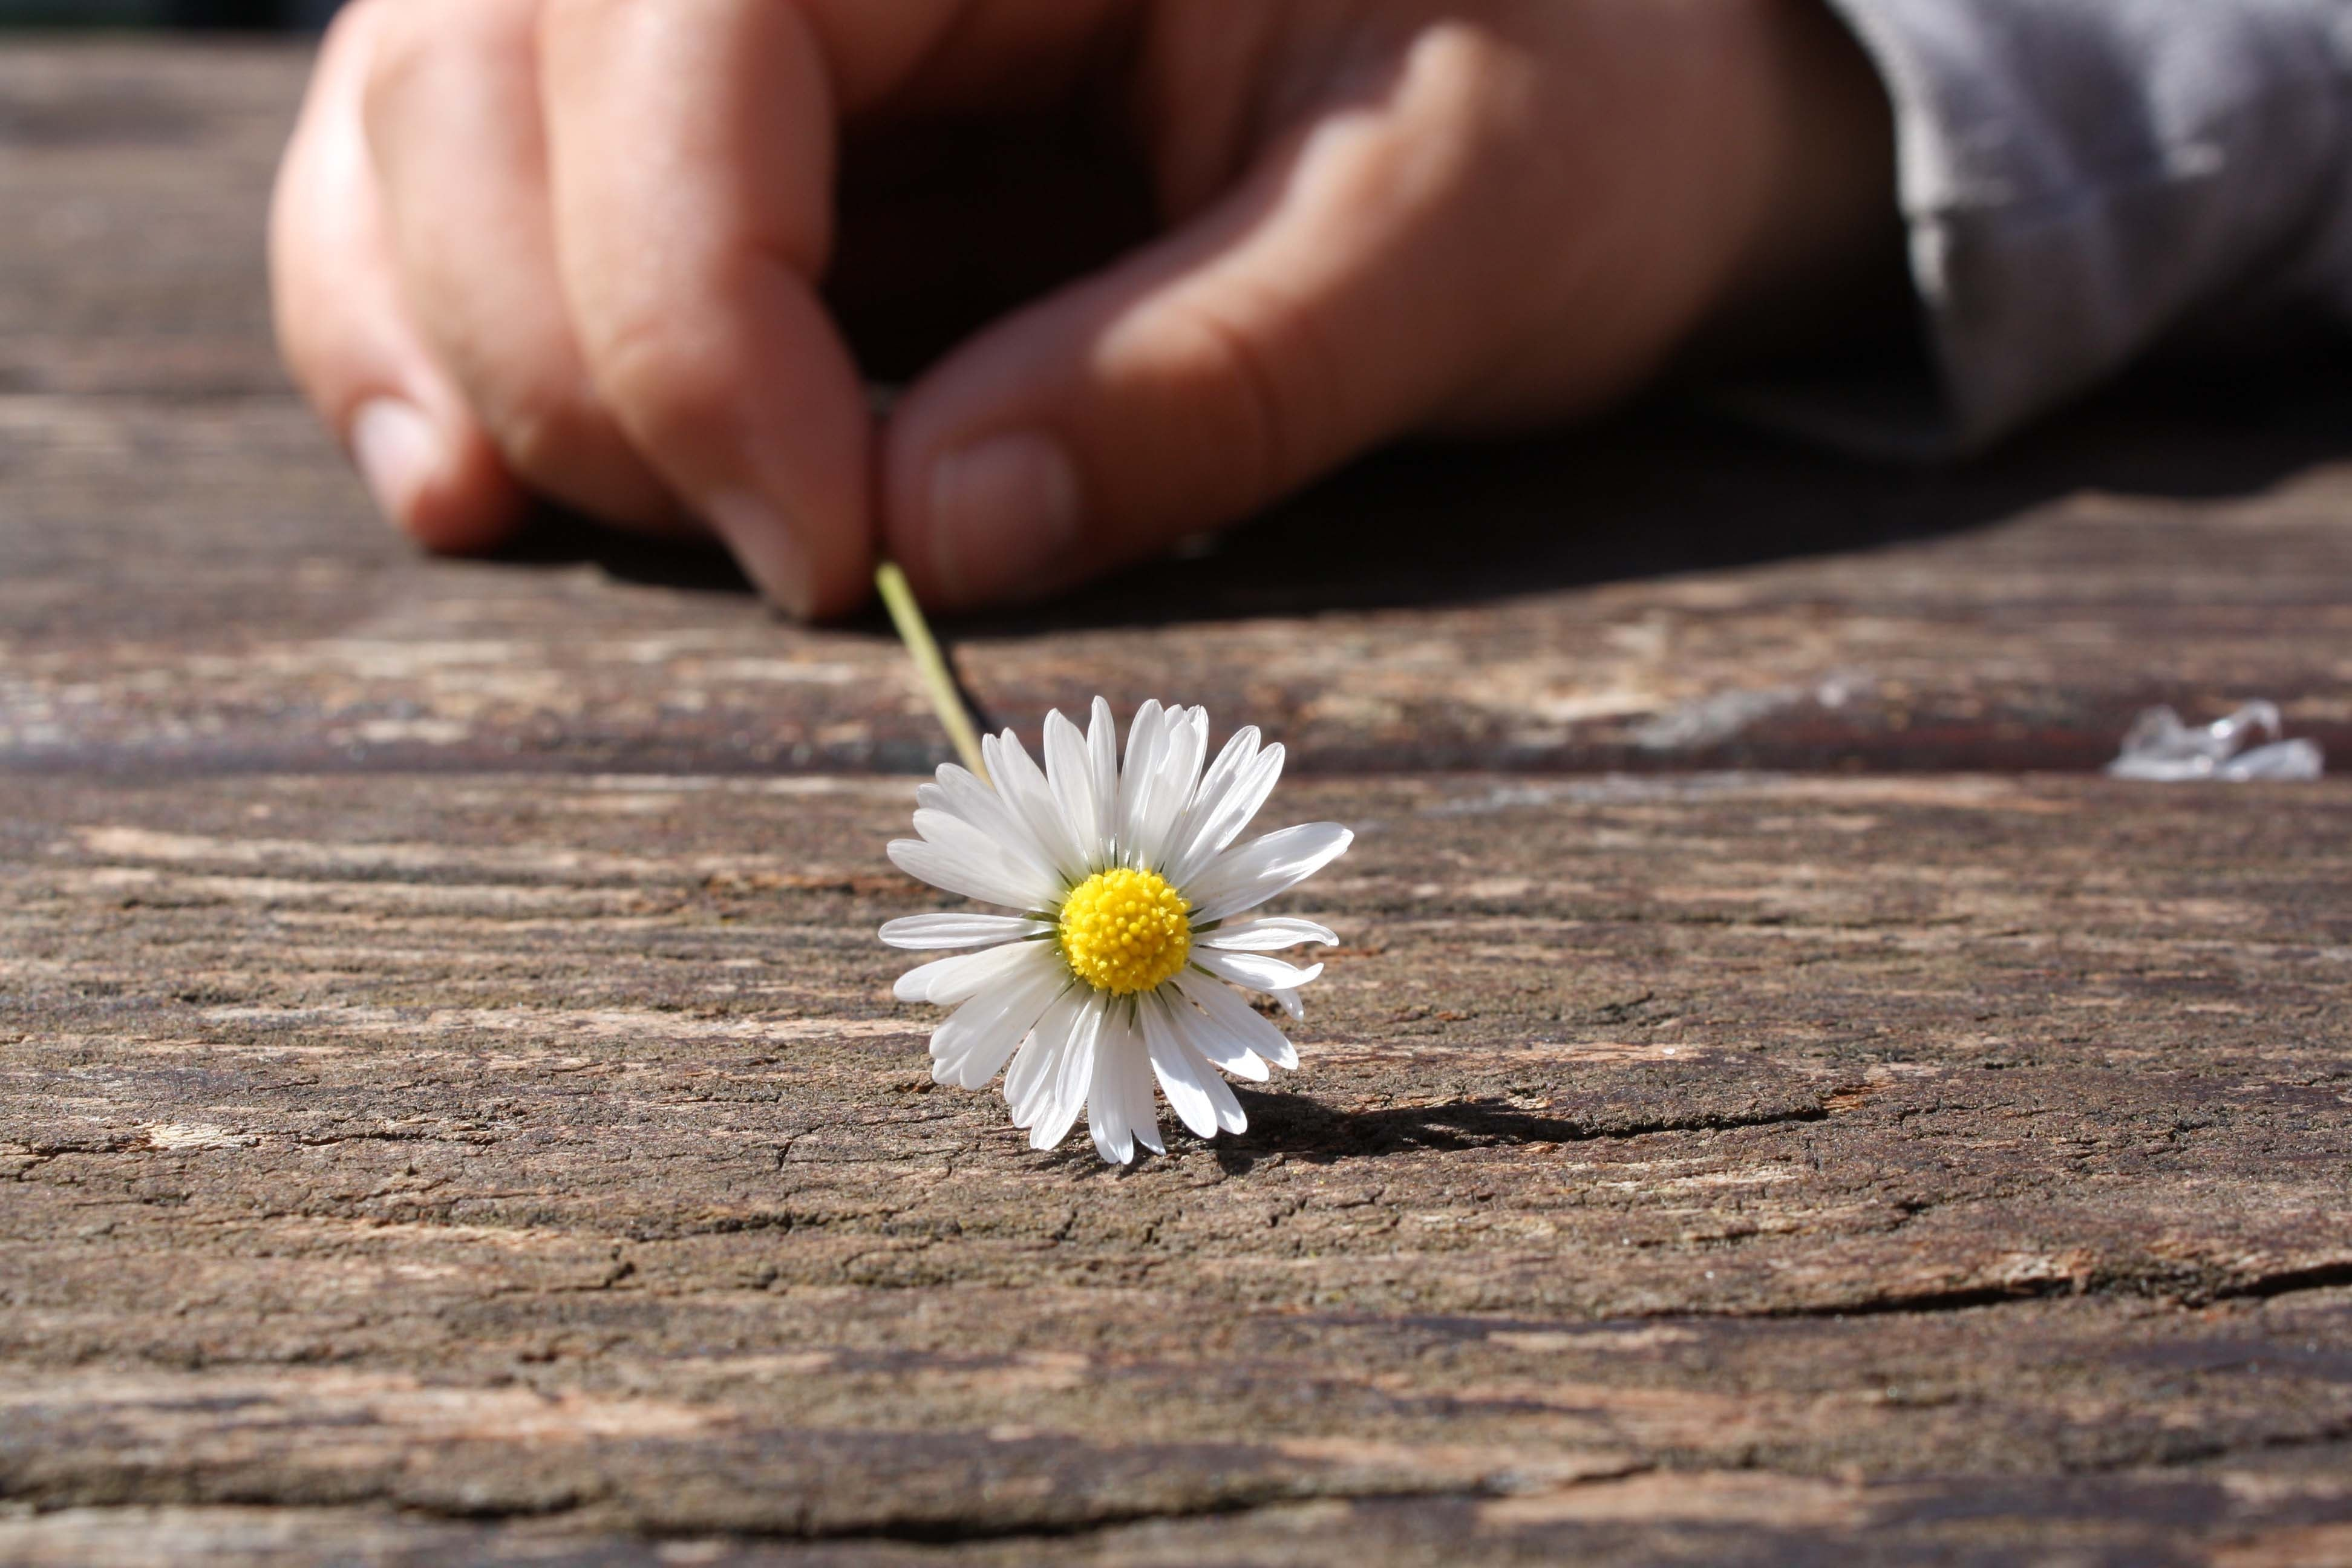 Dandelion Flower on Brown Wooden Table, Bloom, Blossom, Daisy, Flora, HQ Photo